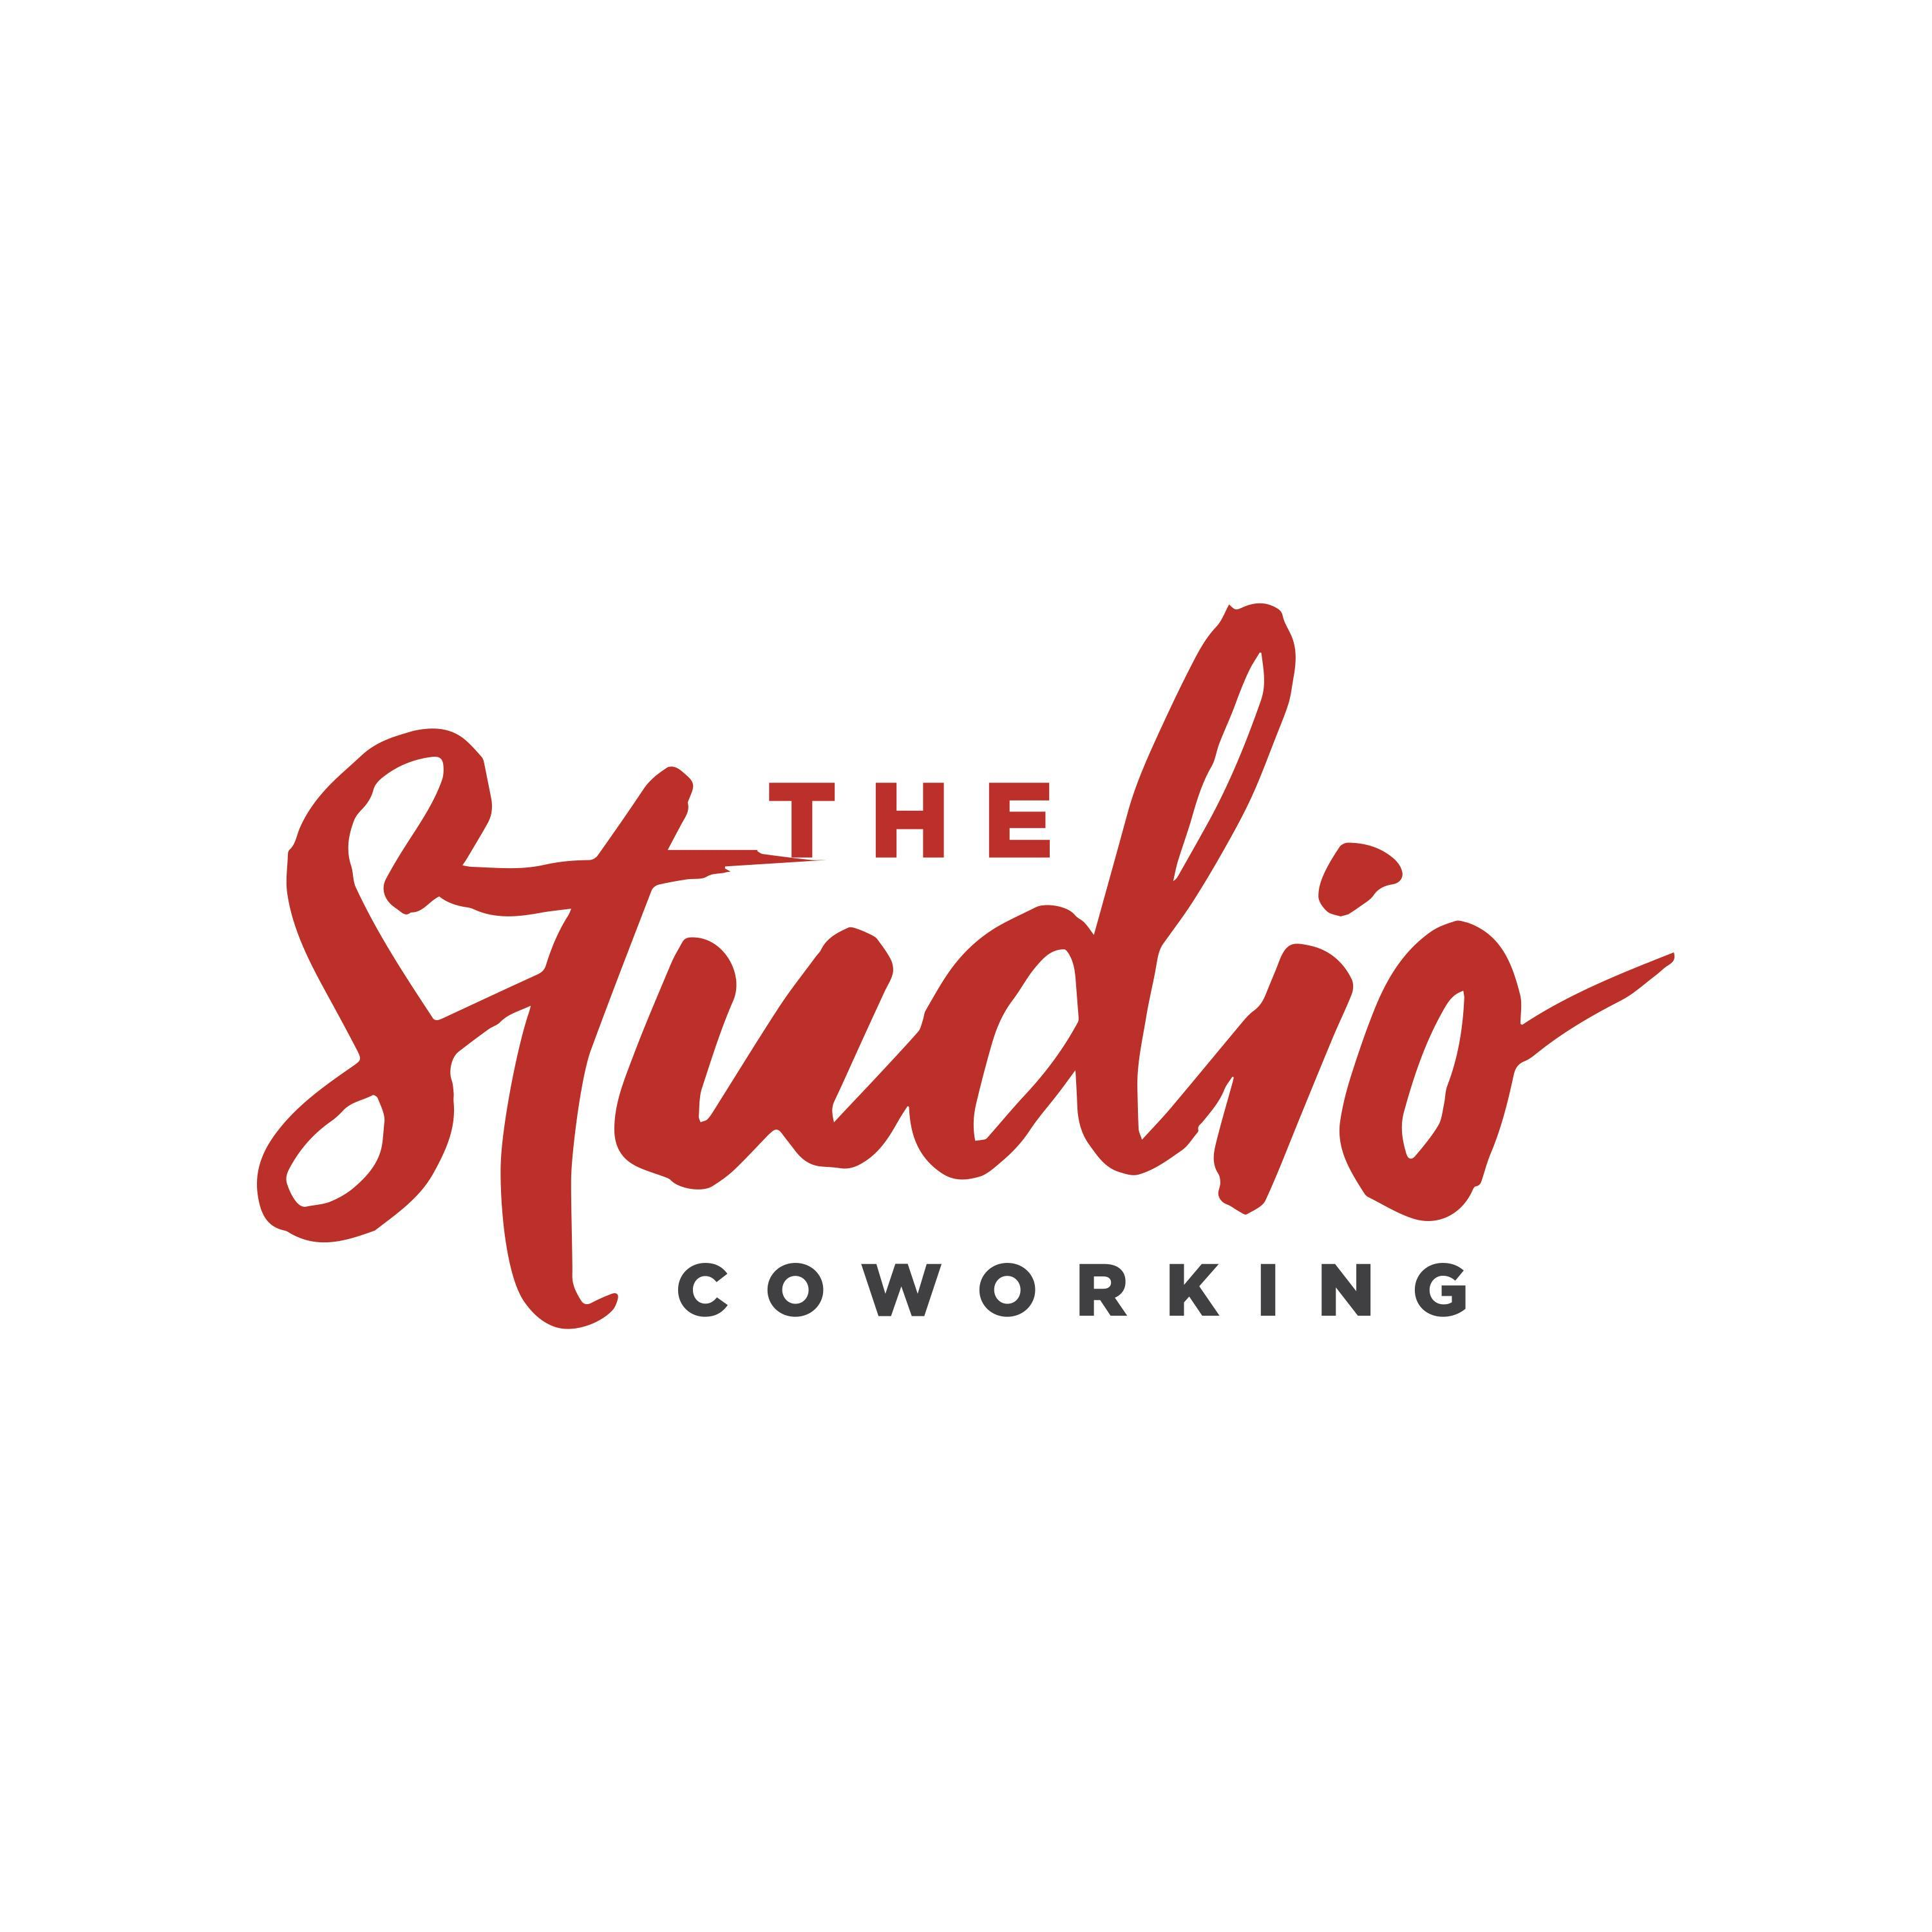 Logo of The Studio Coworking - Downtown Roseville